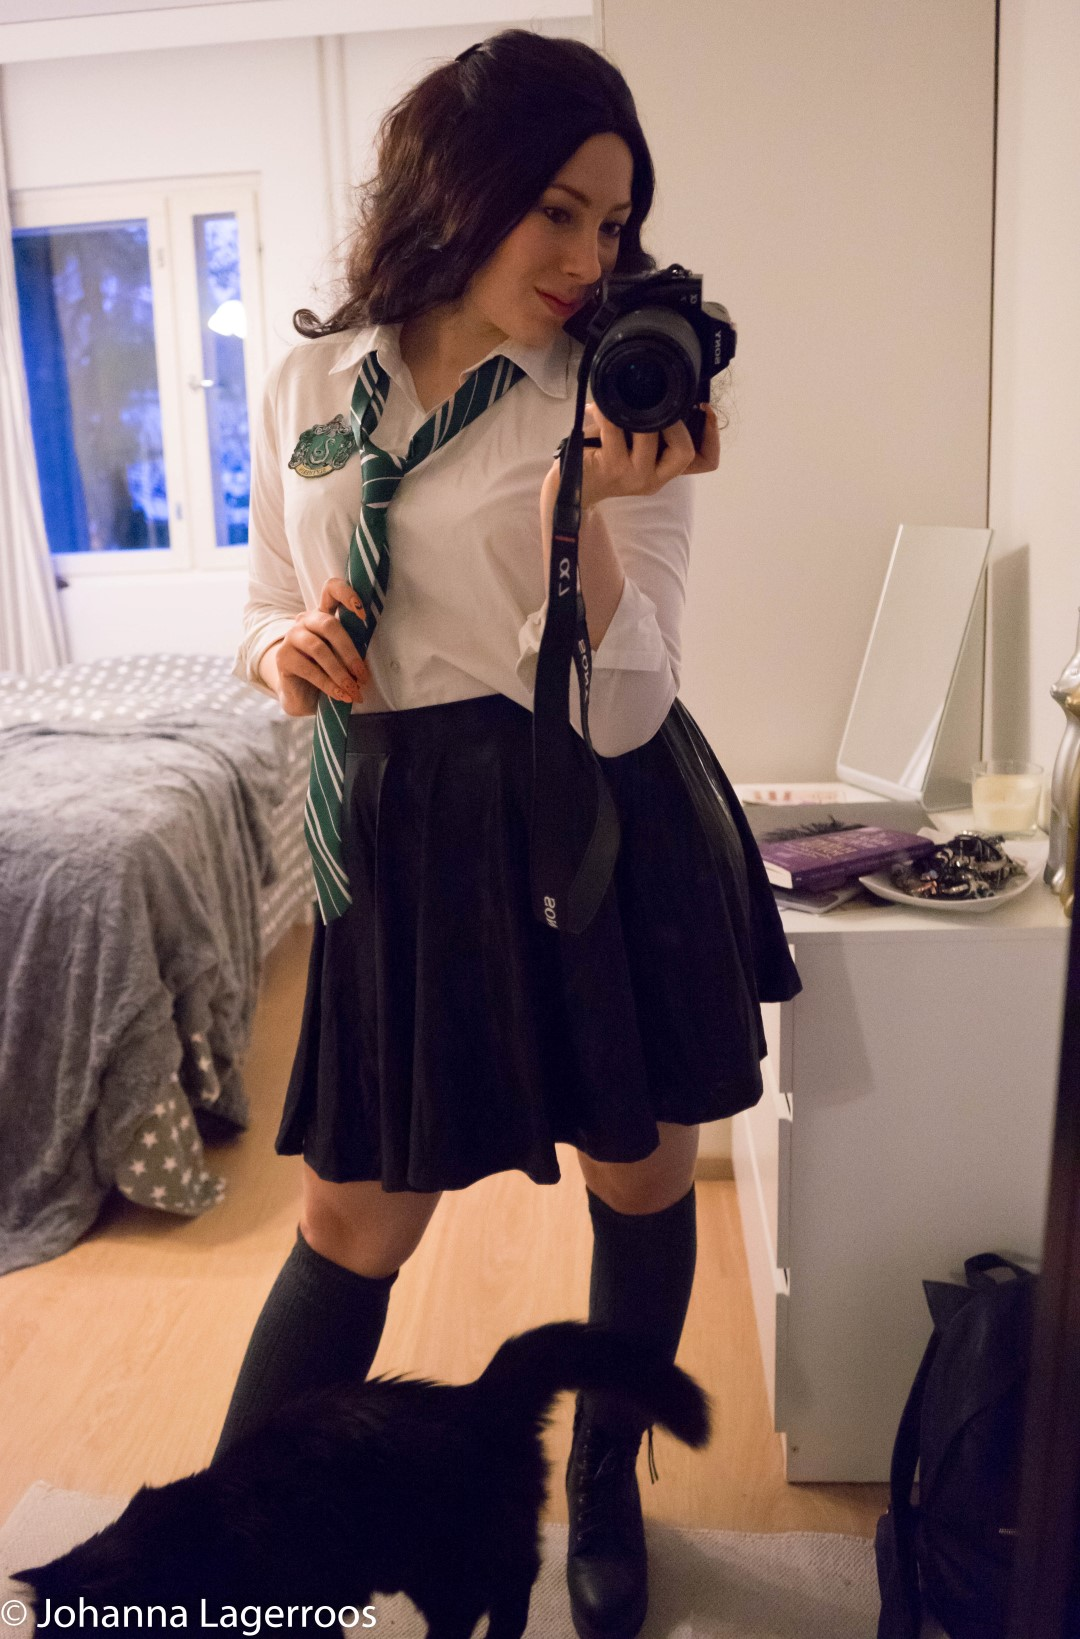 hogwarts student outfit